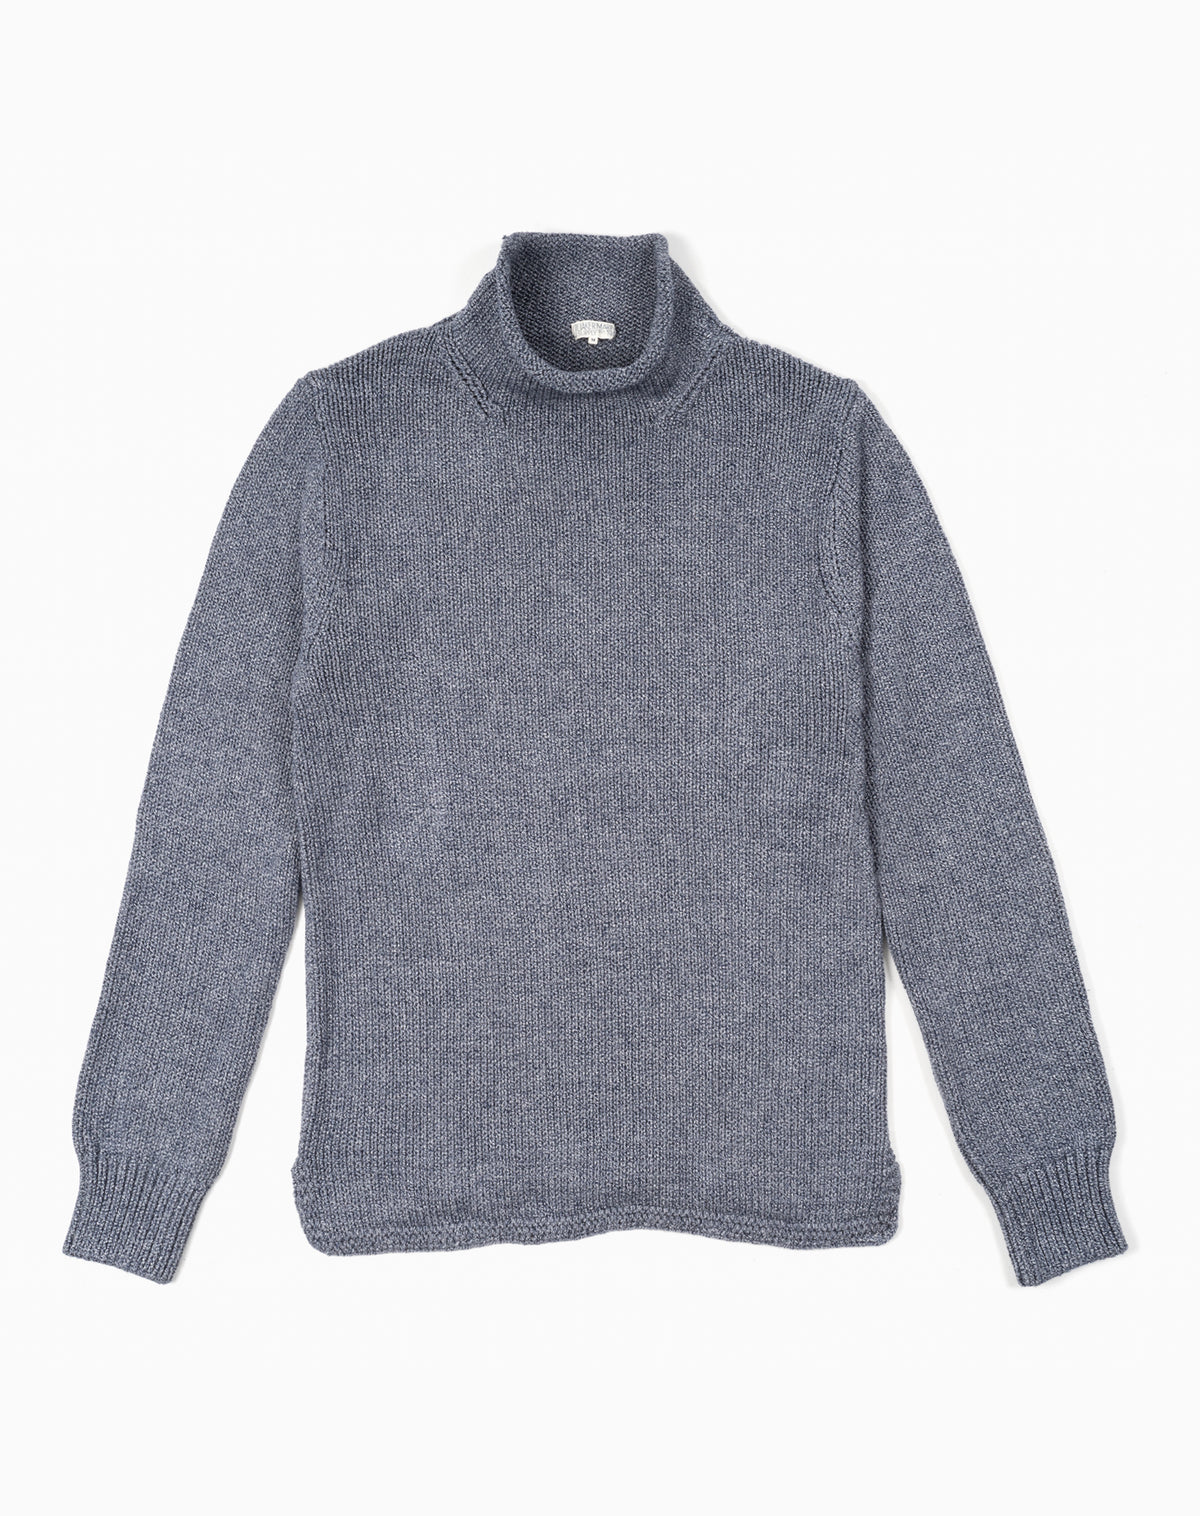 Fisherman's Sweater in Heather Navy